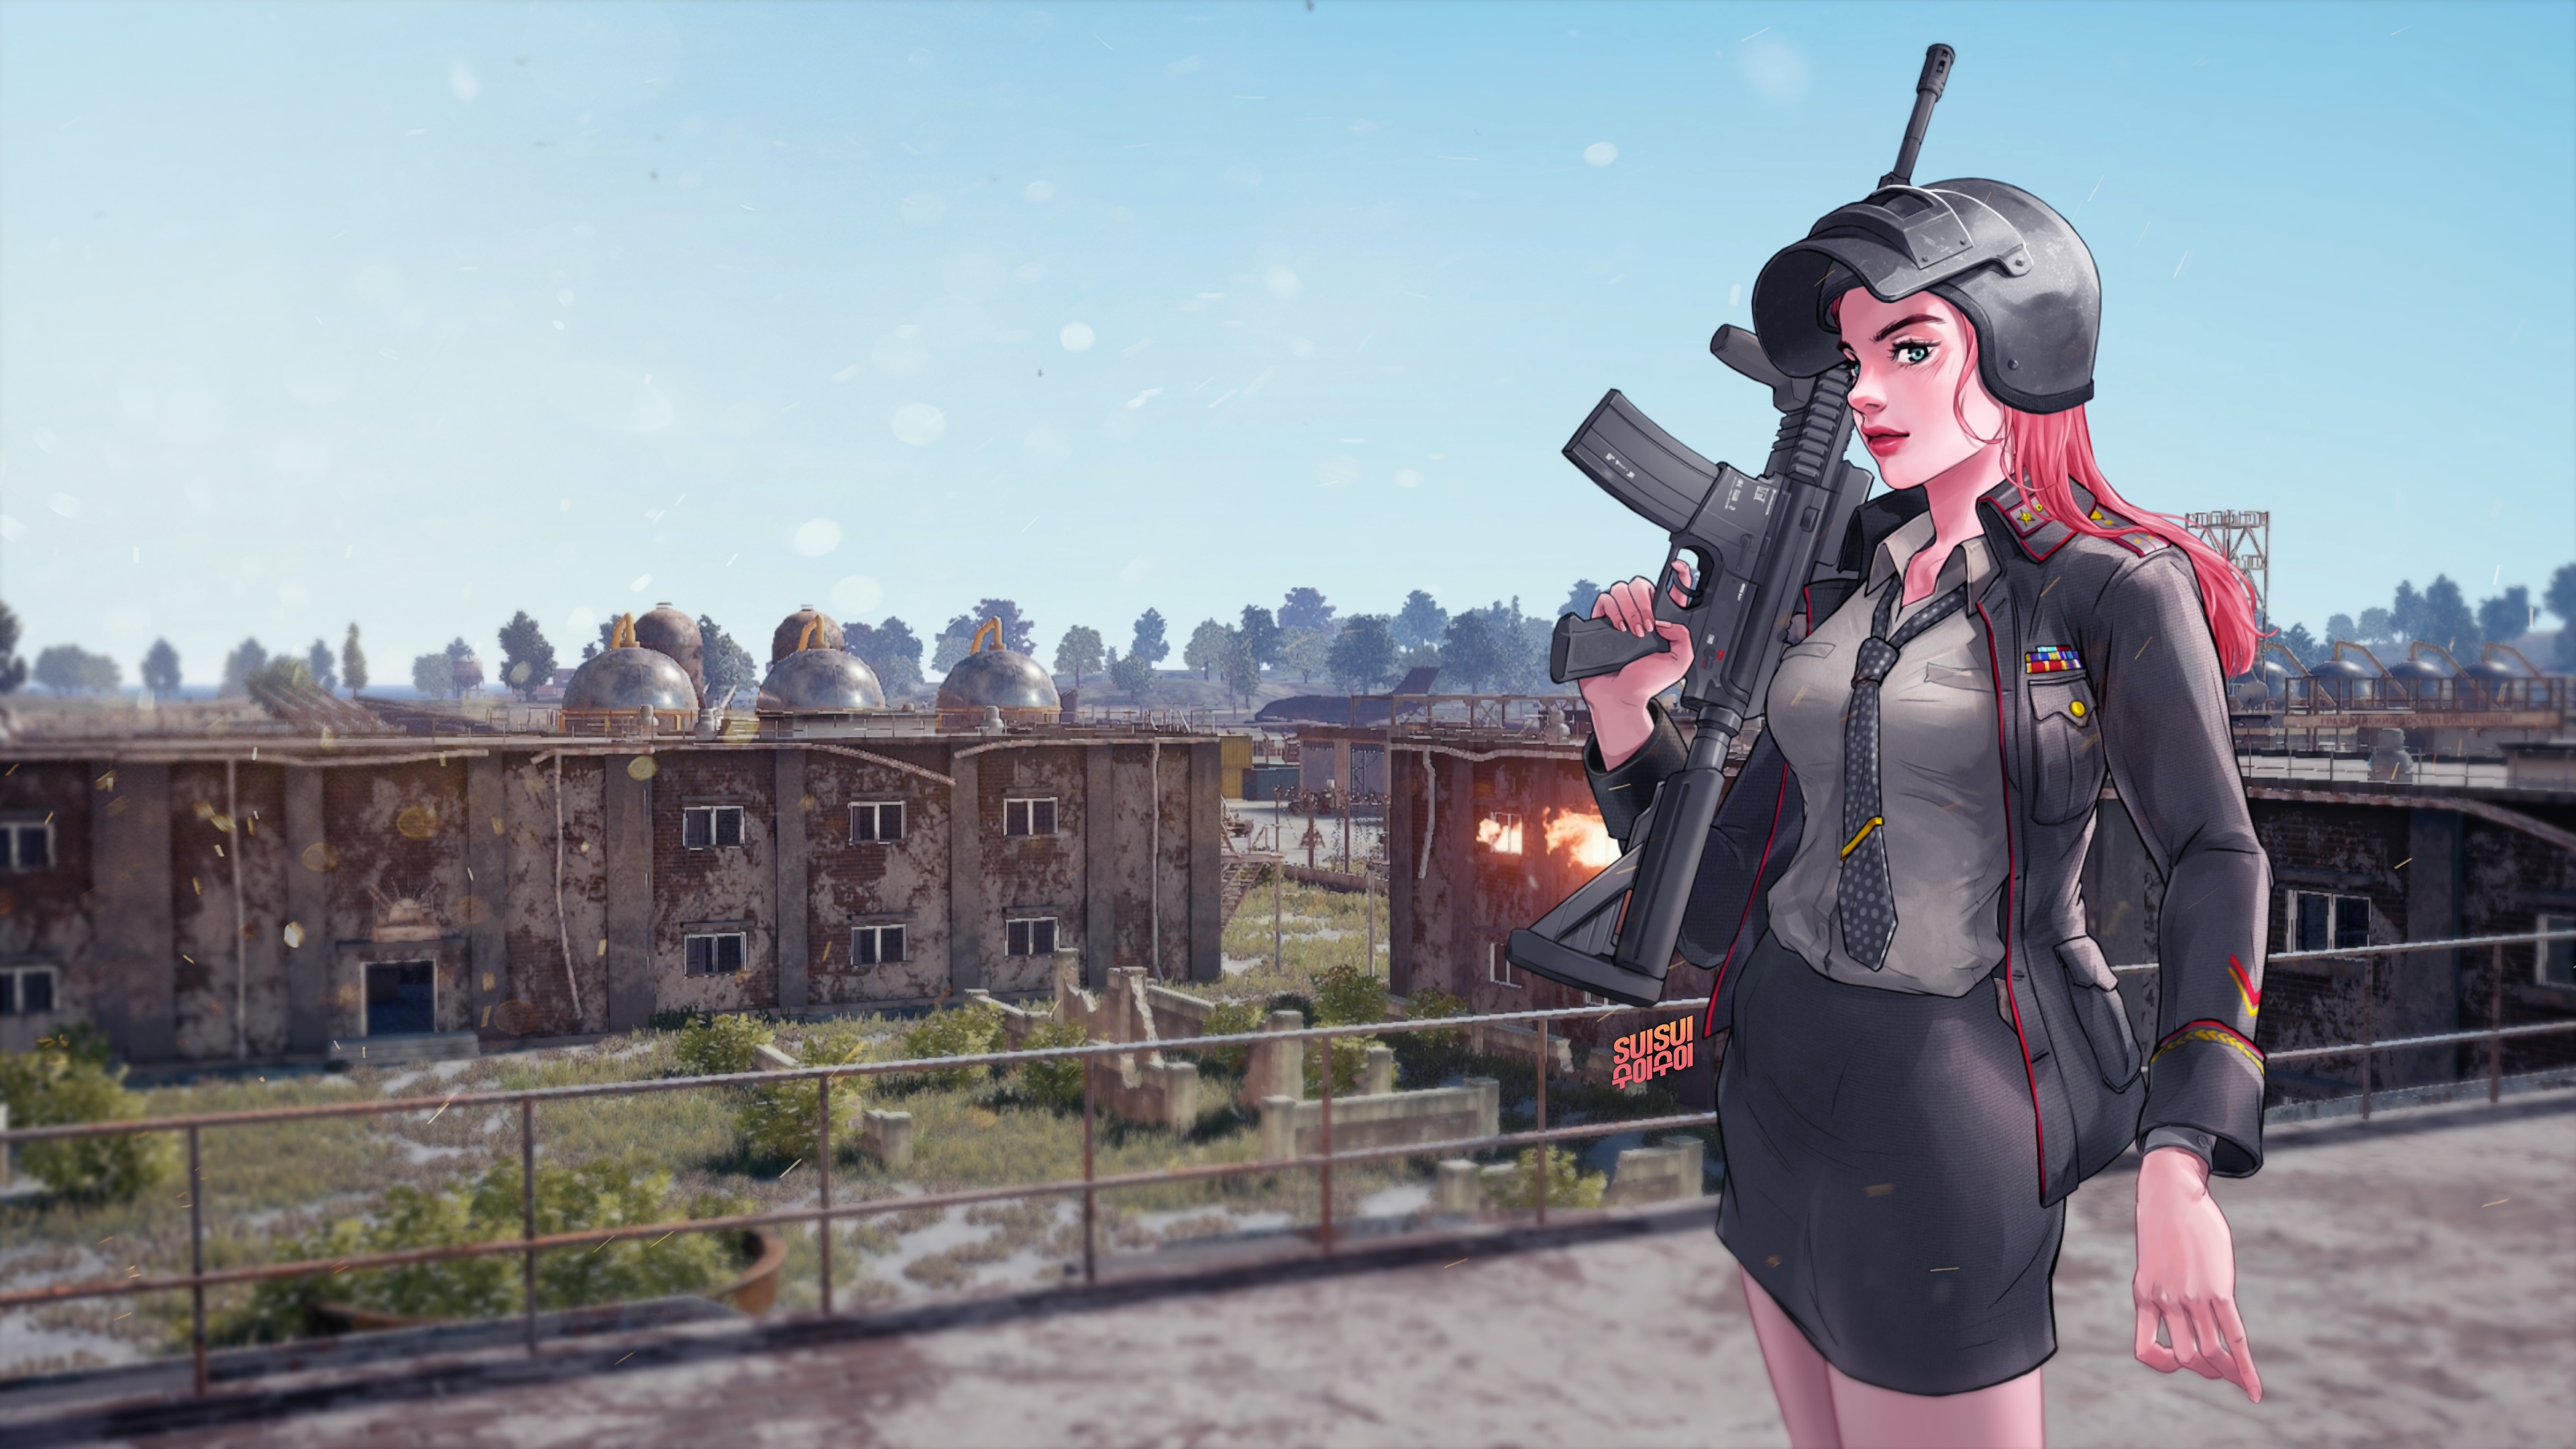 Pubg Game Girl 4k, HD Games, 4k Wallpapers, Images